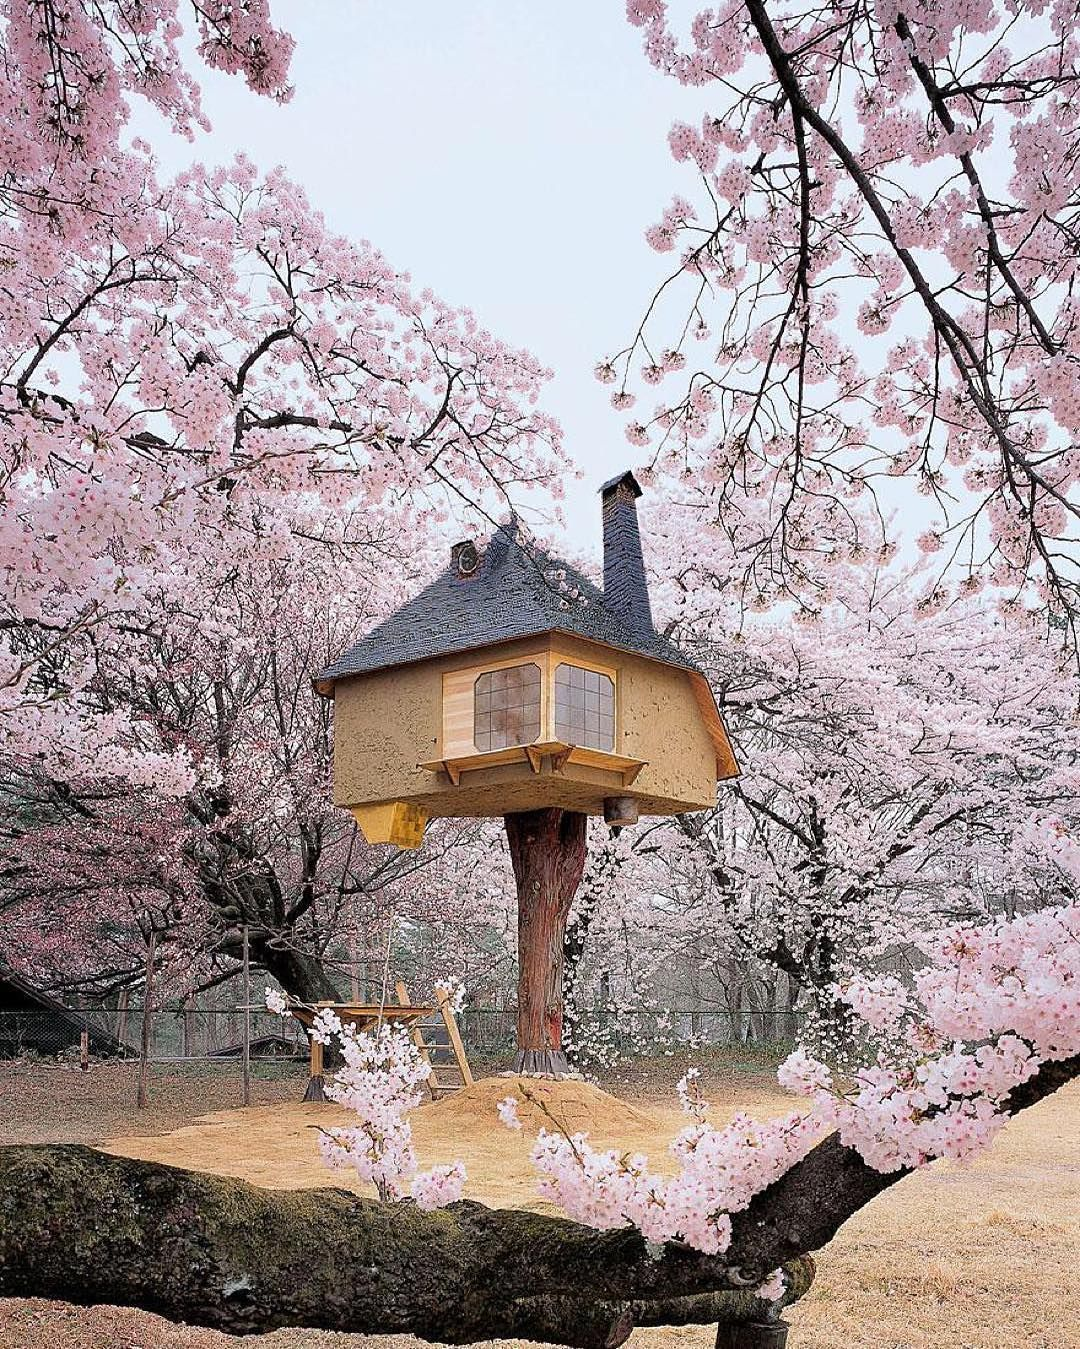 """Teahouse Tetsu tree house. This interior of this teahouse by architect Terunobu Fujimori is simple and modern, but the outside is pure fantasy. You can find Teahouse Tetsu surrounded by cherry blossoms at the Kiyoharu Shirakaba Museum, Hokuto City, Japan. Photo from the book: """"Tree houses: fairy tale castles in the air."""""""